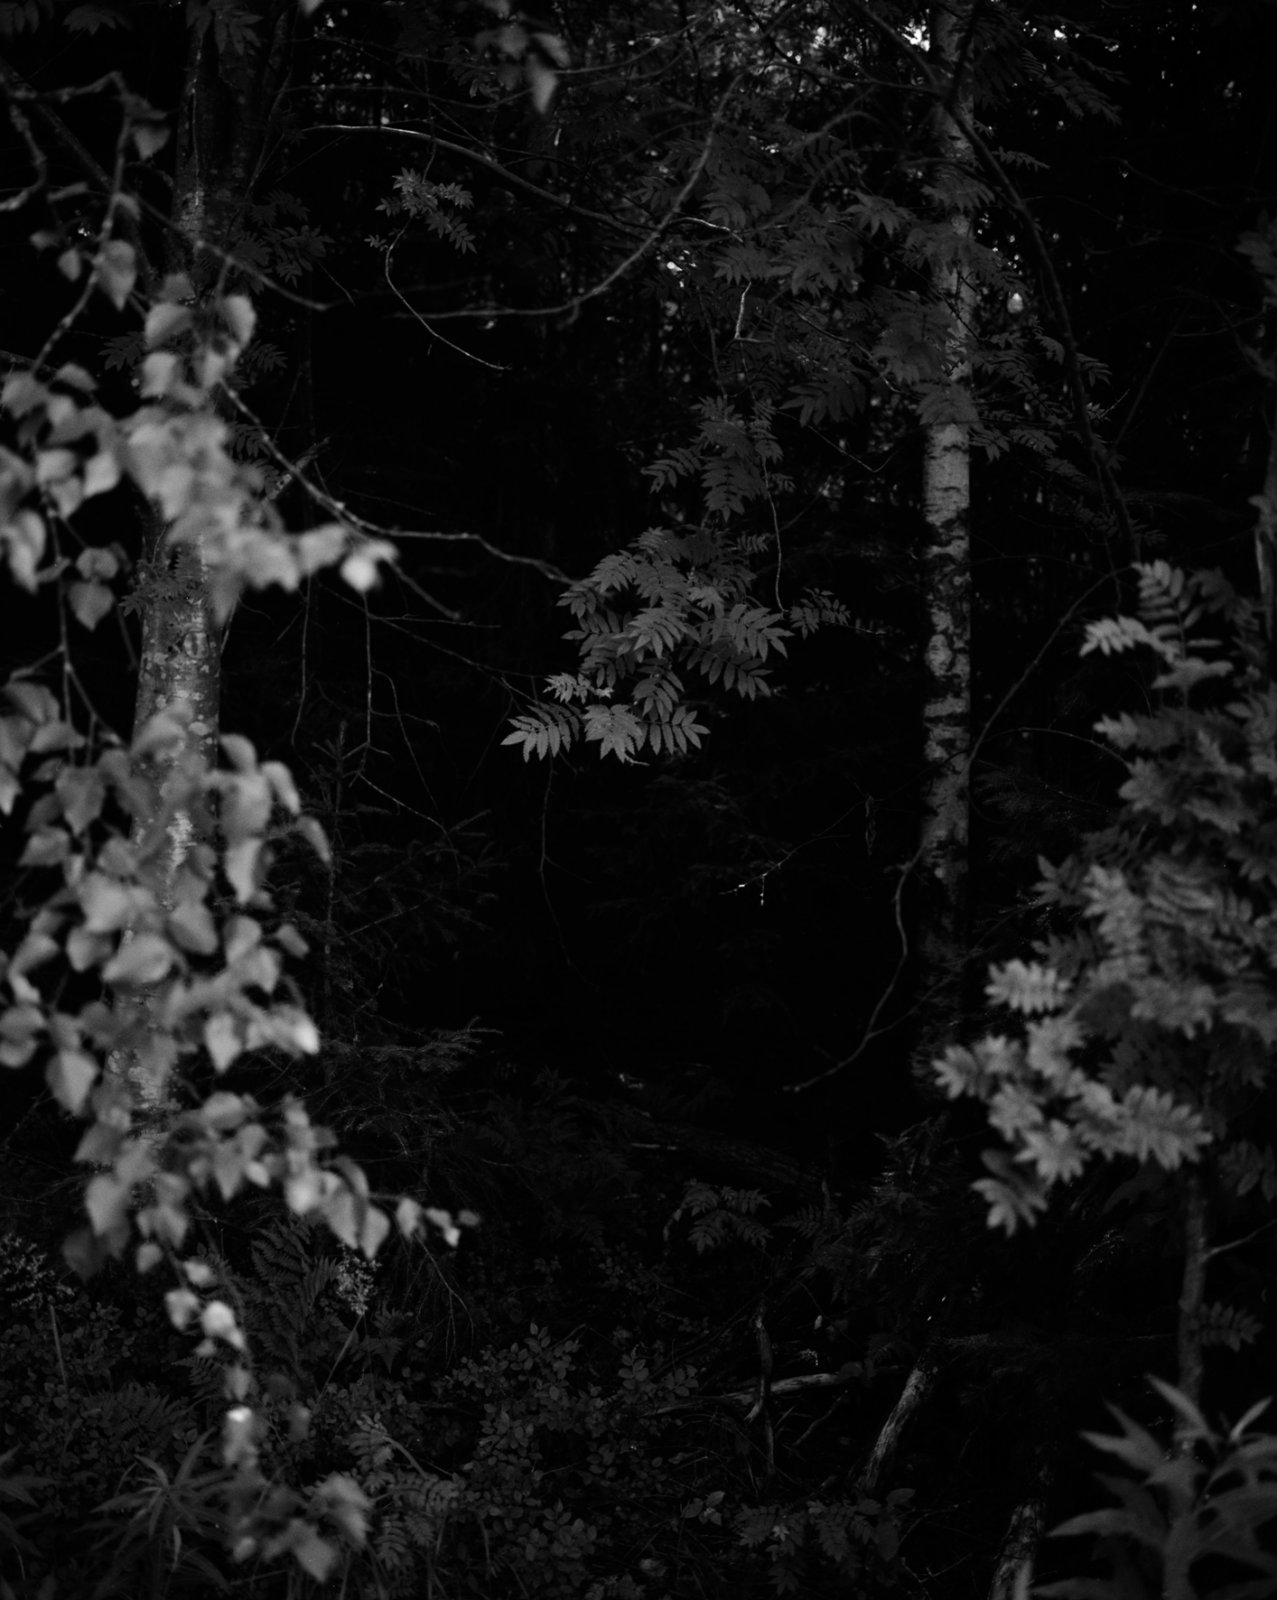 Untitled (Dark Forest), 2009 © Grant Willing